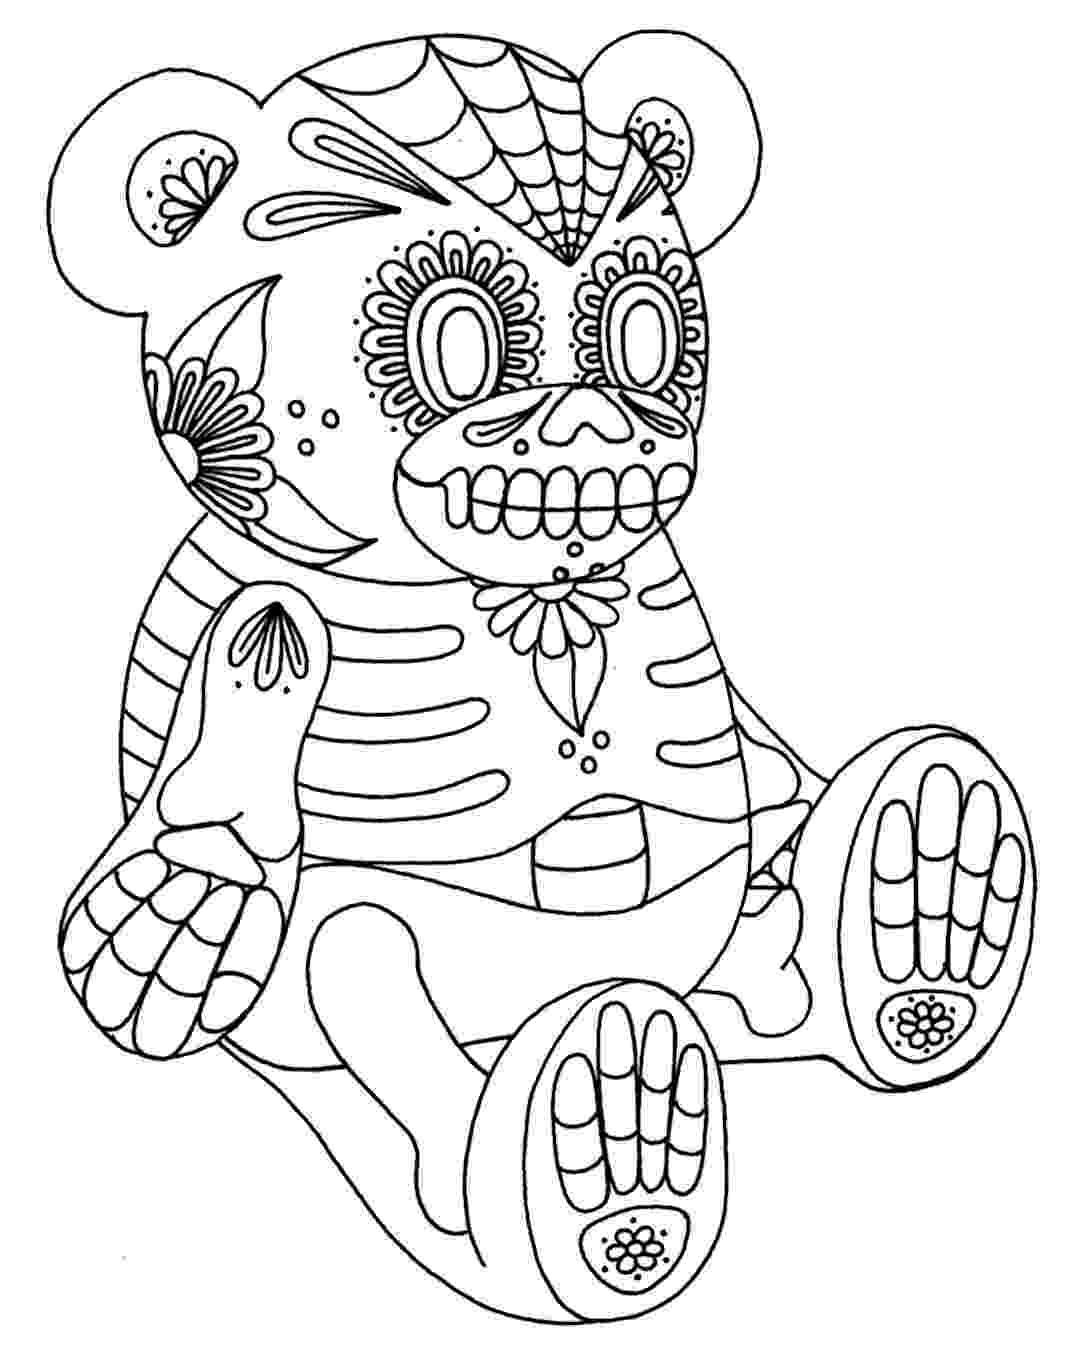 skulls coloring pages yucca flats nm wenchkin39s coloring pages sugar skull skulls coloring pages